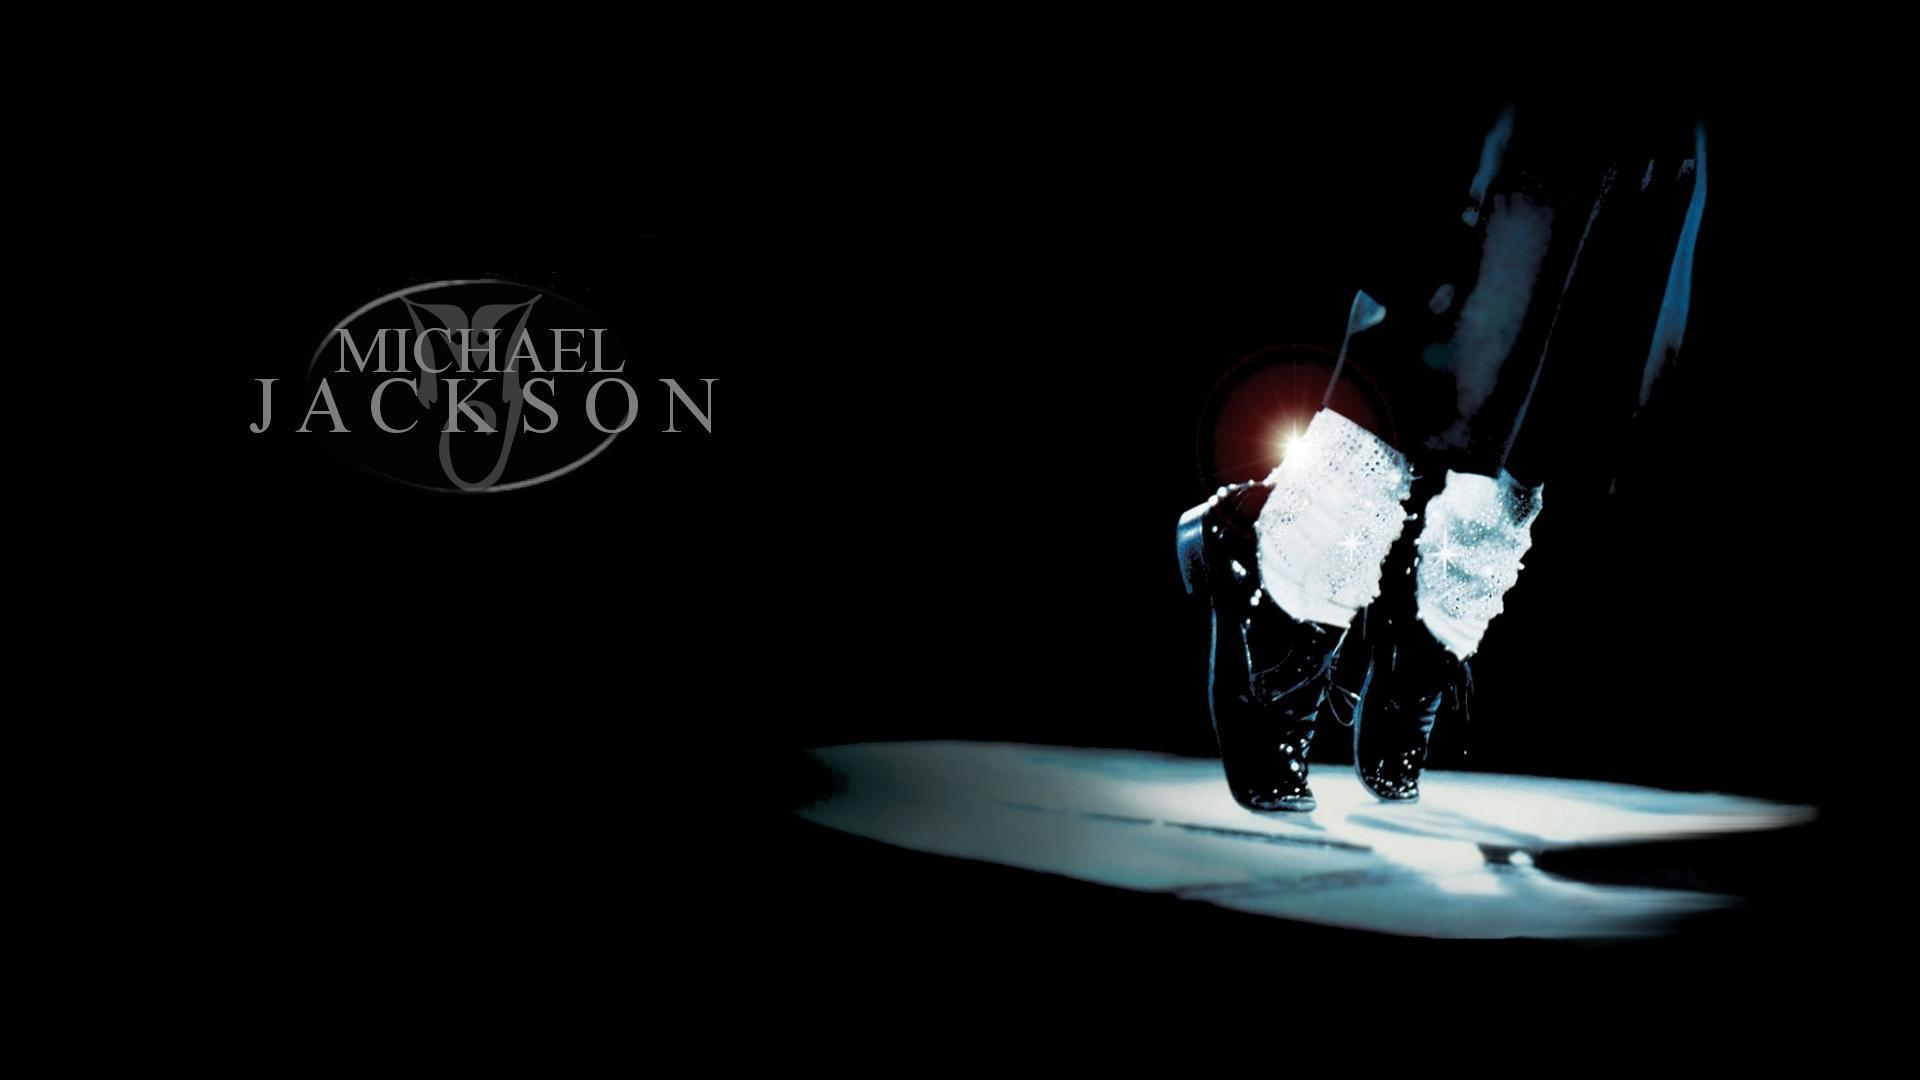 michael jackson images mj hd wallpaper and background